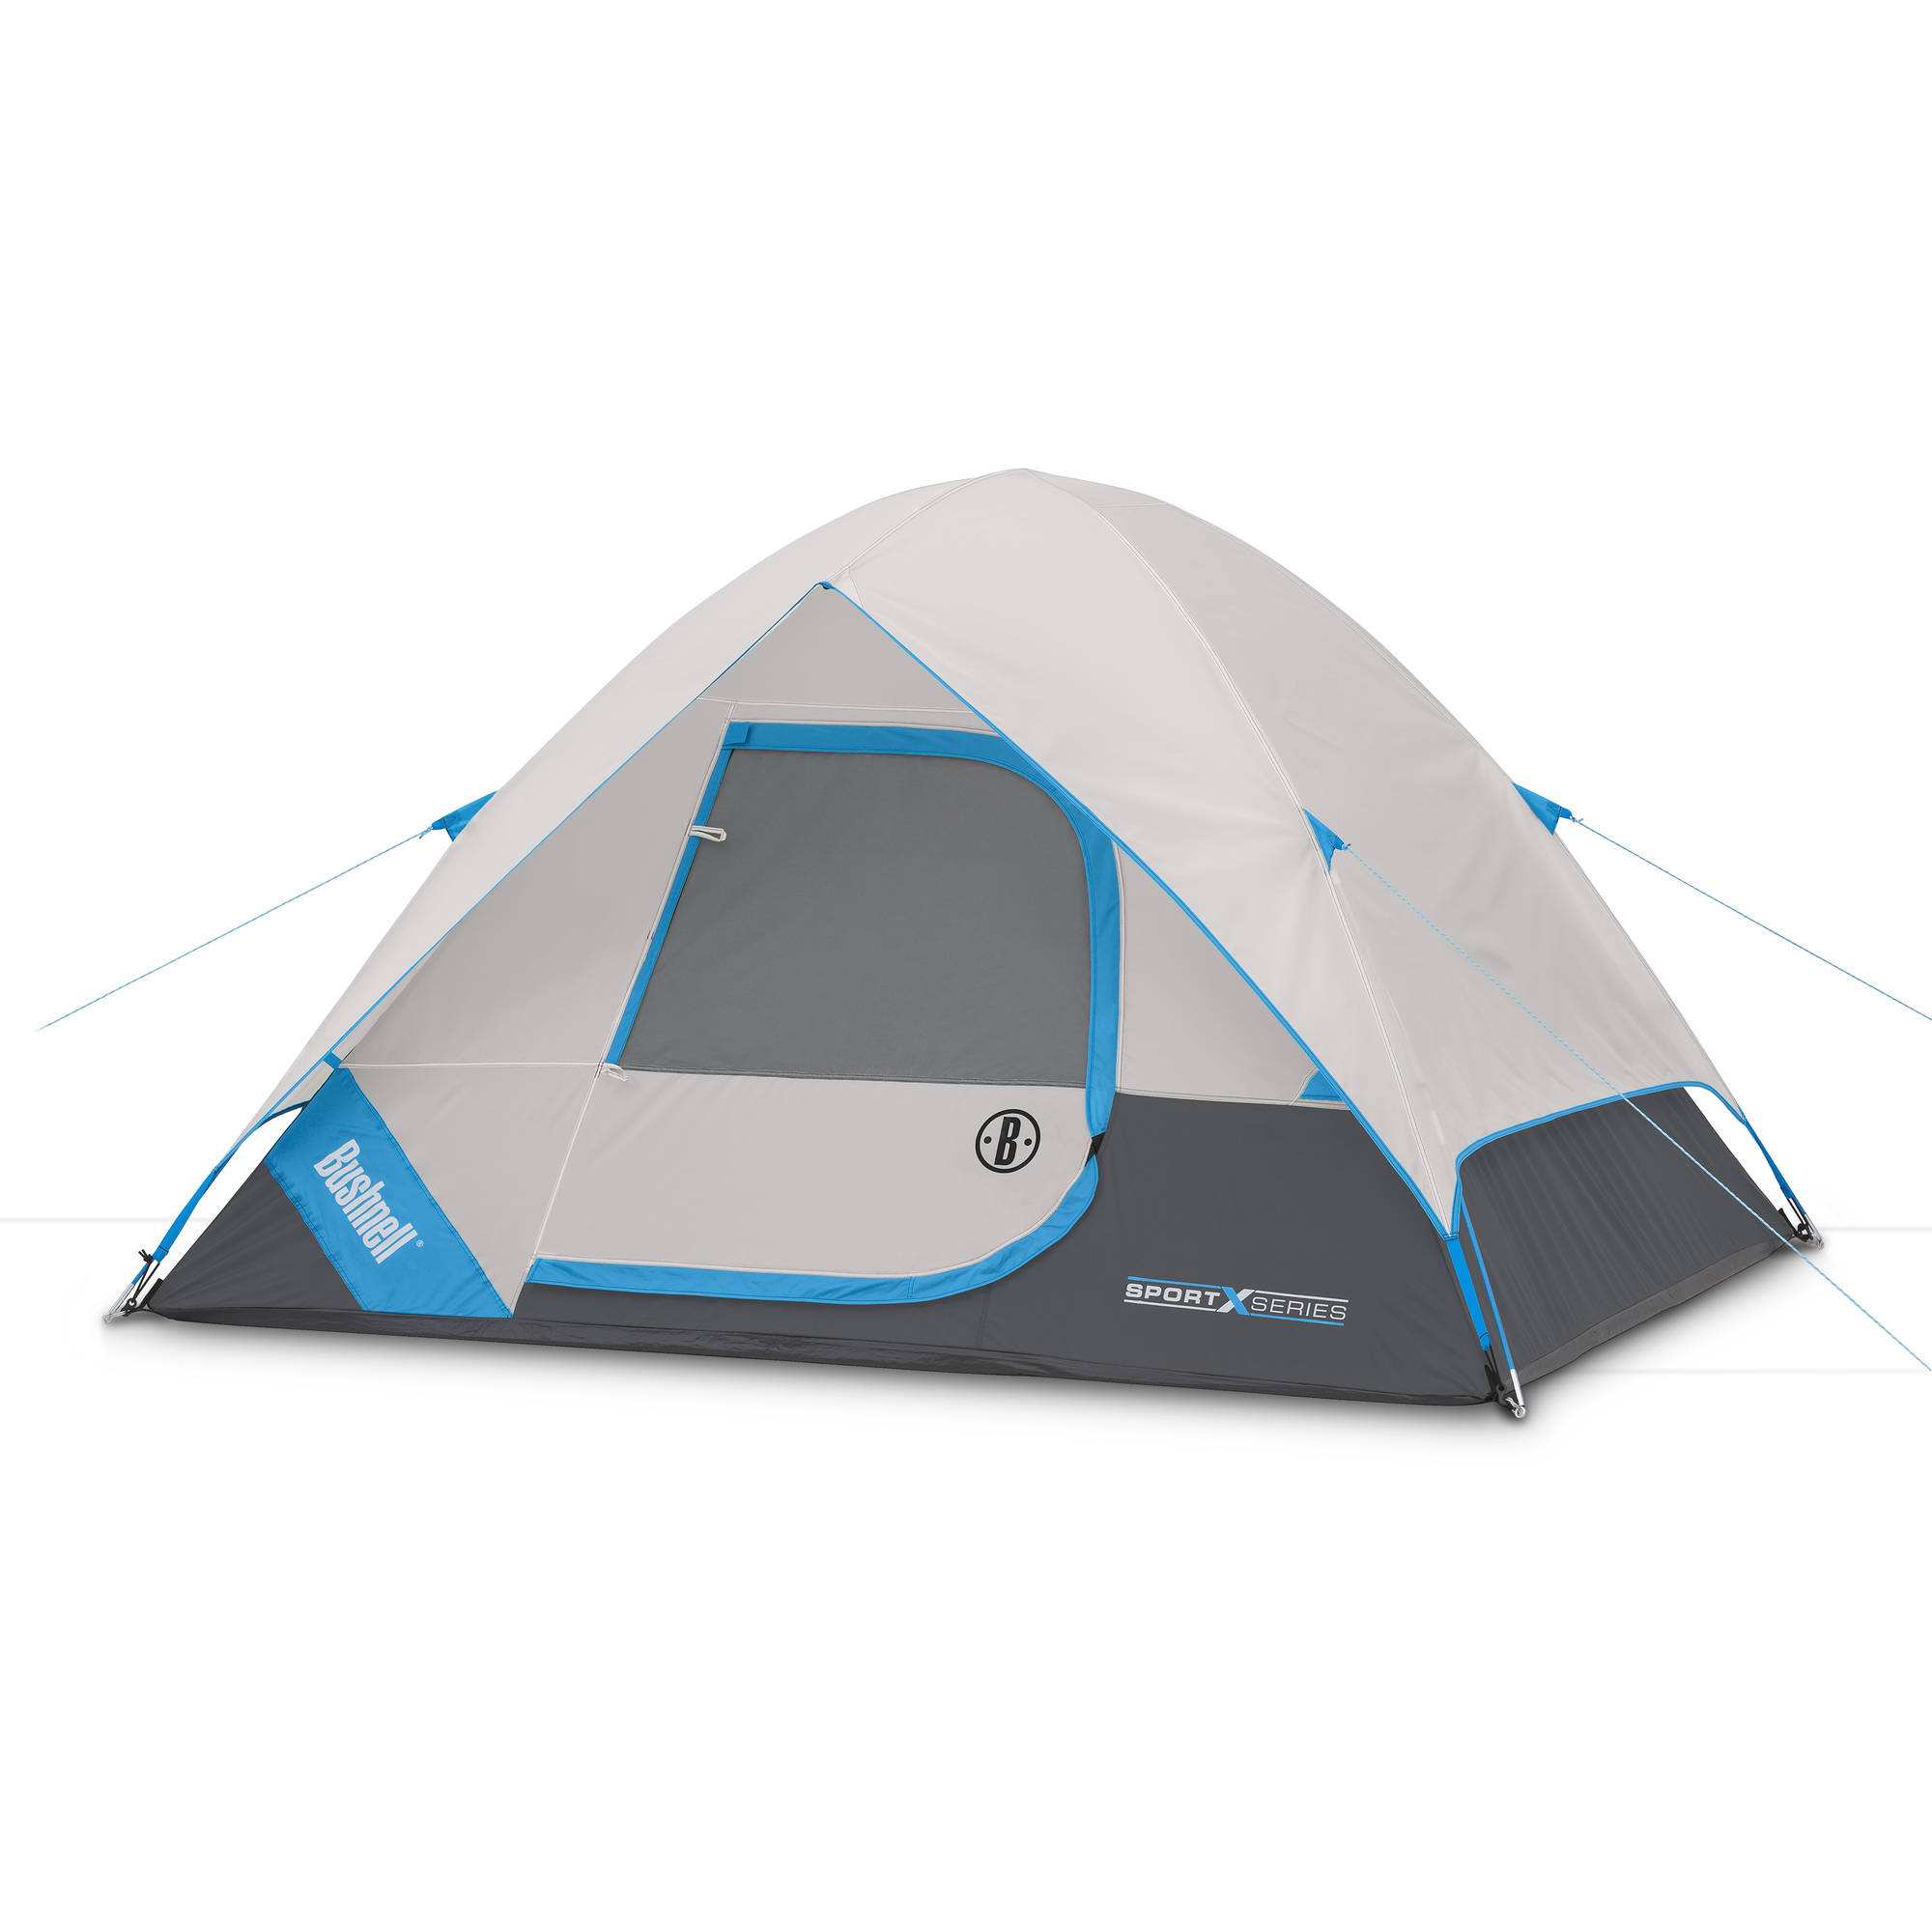 Bushnell Sport Series 8' x 7' Dome Tent, Sleeps 4 by Campvalley Global Limited